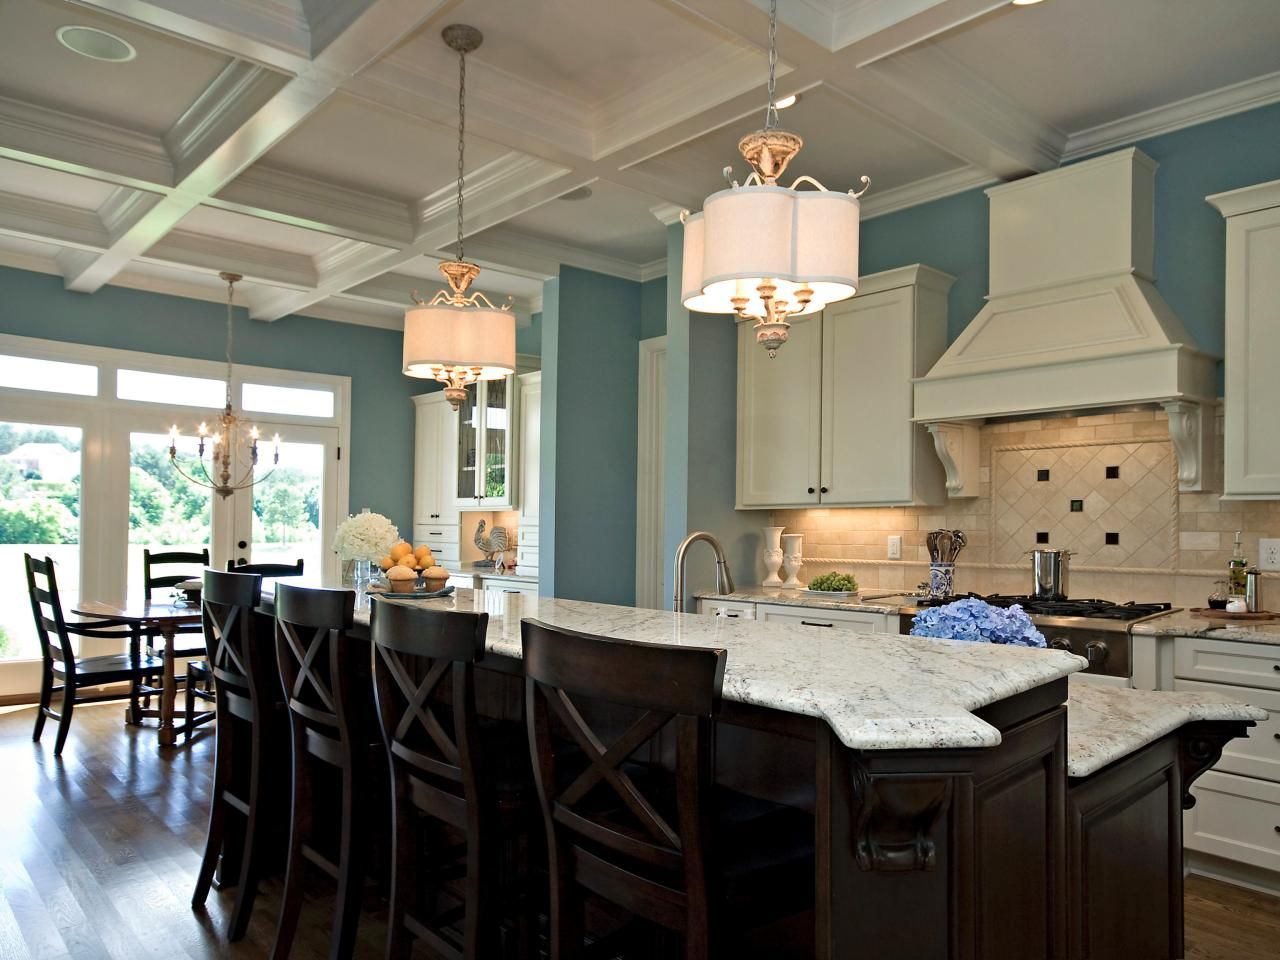 This Airy Blue Kitchen Is Open To The Adjoining Dining Room Allowing Plenty Of Natural